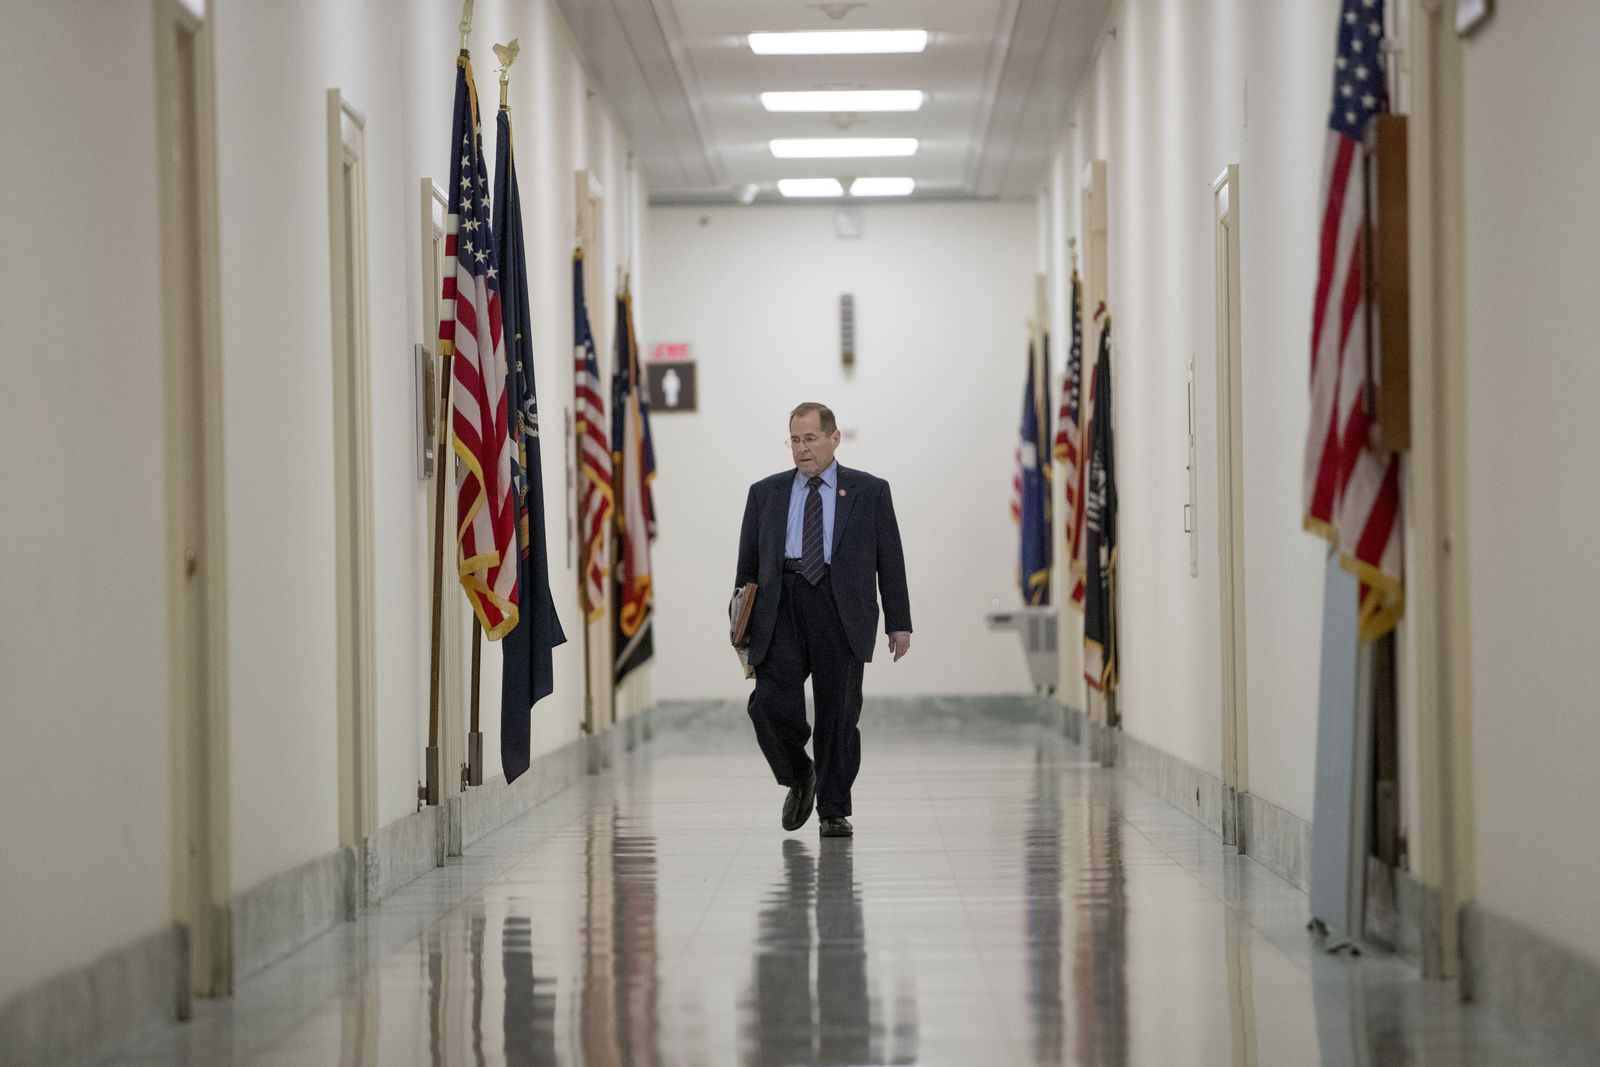 Judiciary Committee Chairman Jerrold Nadler, D-N.Y., arrives at his office before a House Judiciary Committee hearing without former White House Counsel Don McGahn, who was a key figure in special counsel Robert Mueller's investigation, on Capitol Hill in Washington. (AP Photo/Andrew Harnik)